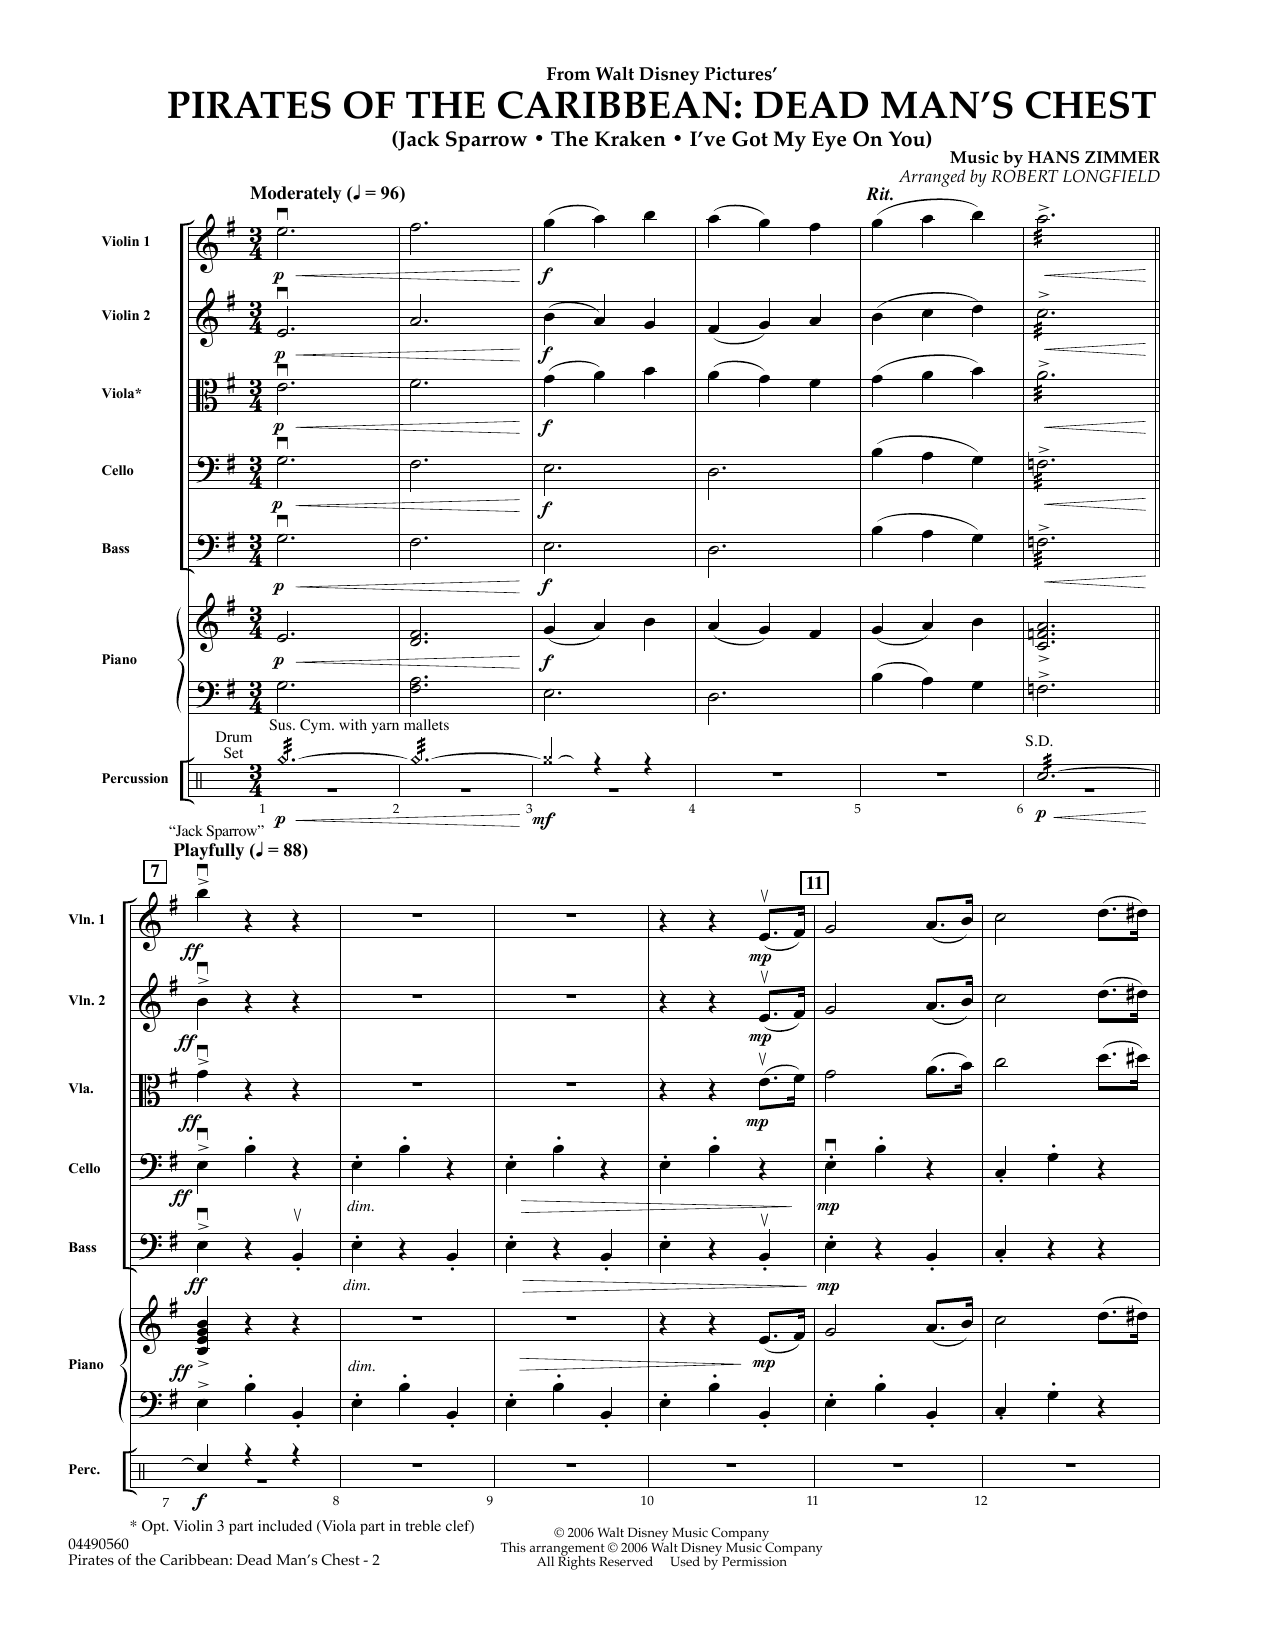 Pirates of the Caribbean: Dead Man's Chest (COMPLETE) sheet music for orchestra by Hans Zimmer